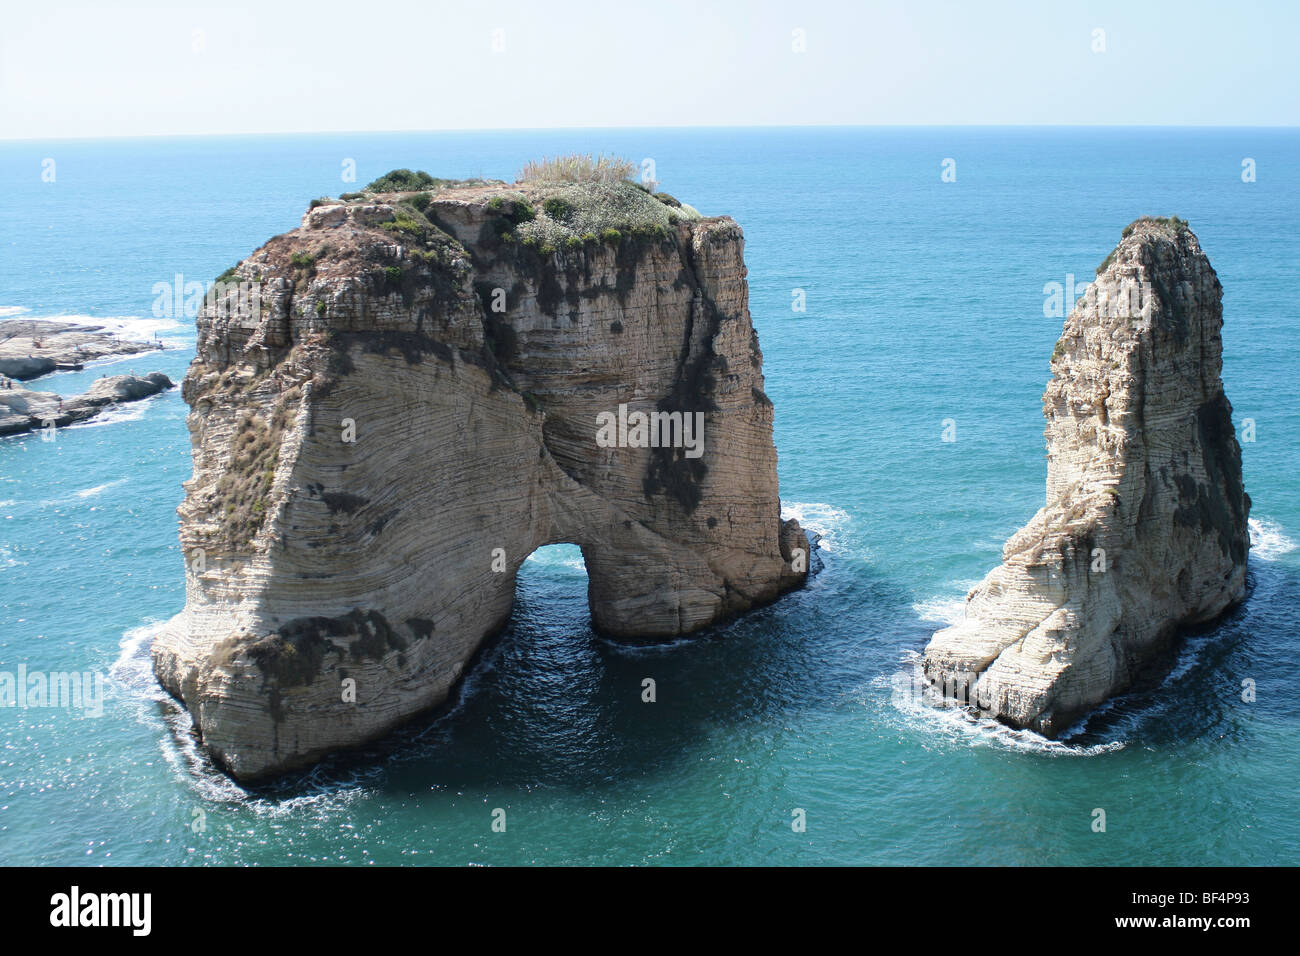 roch of Beirut - Stock Image